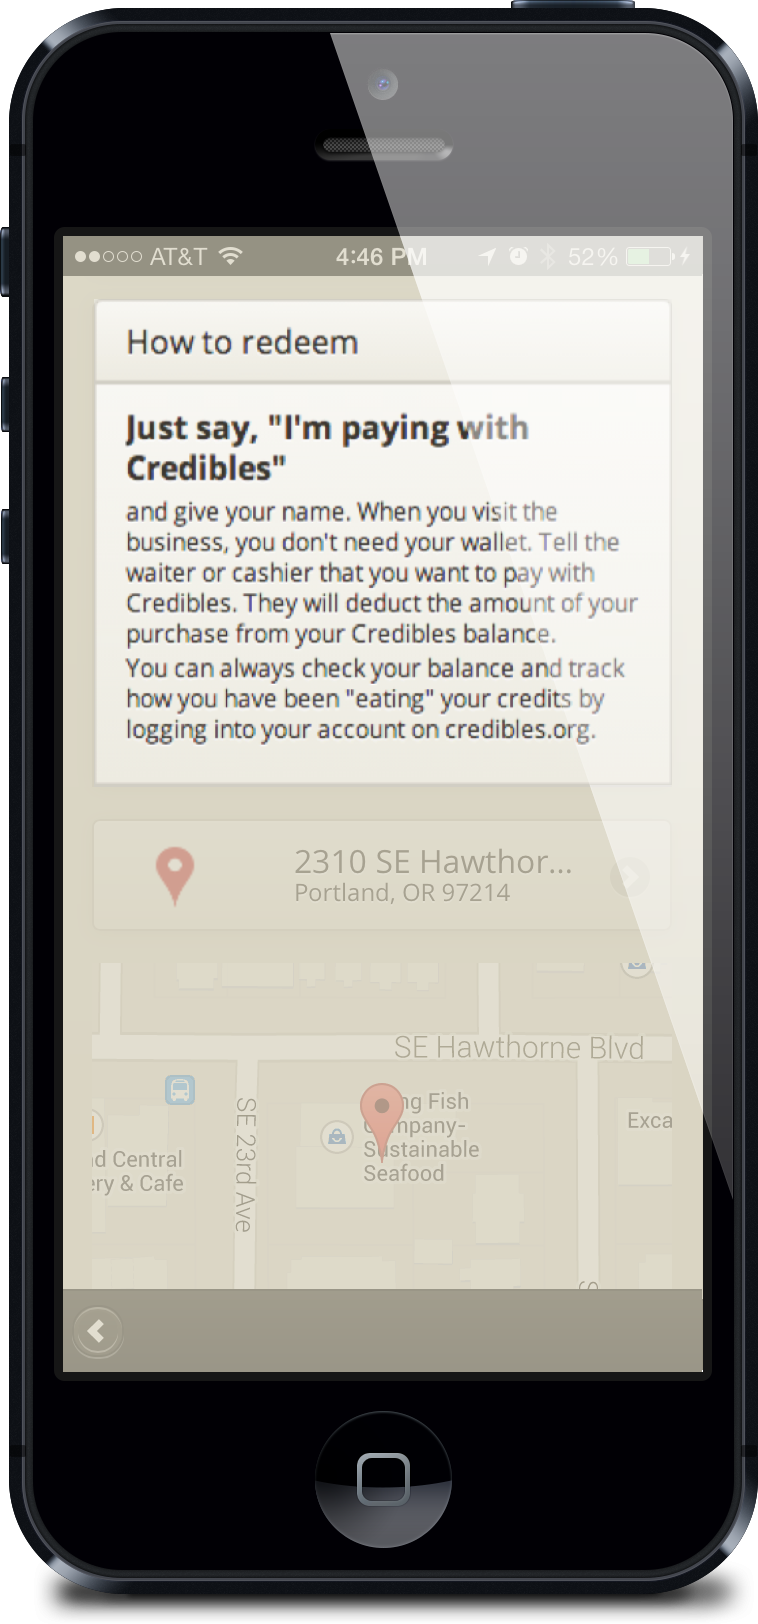 Credibles app for customers